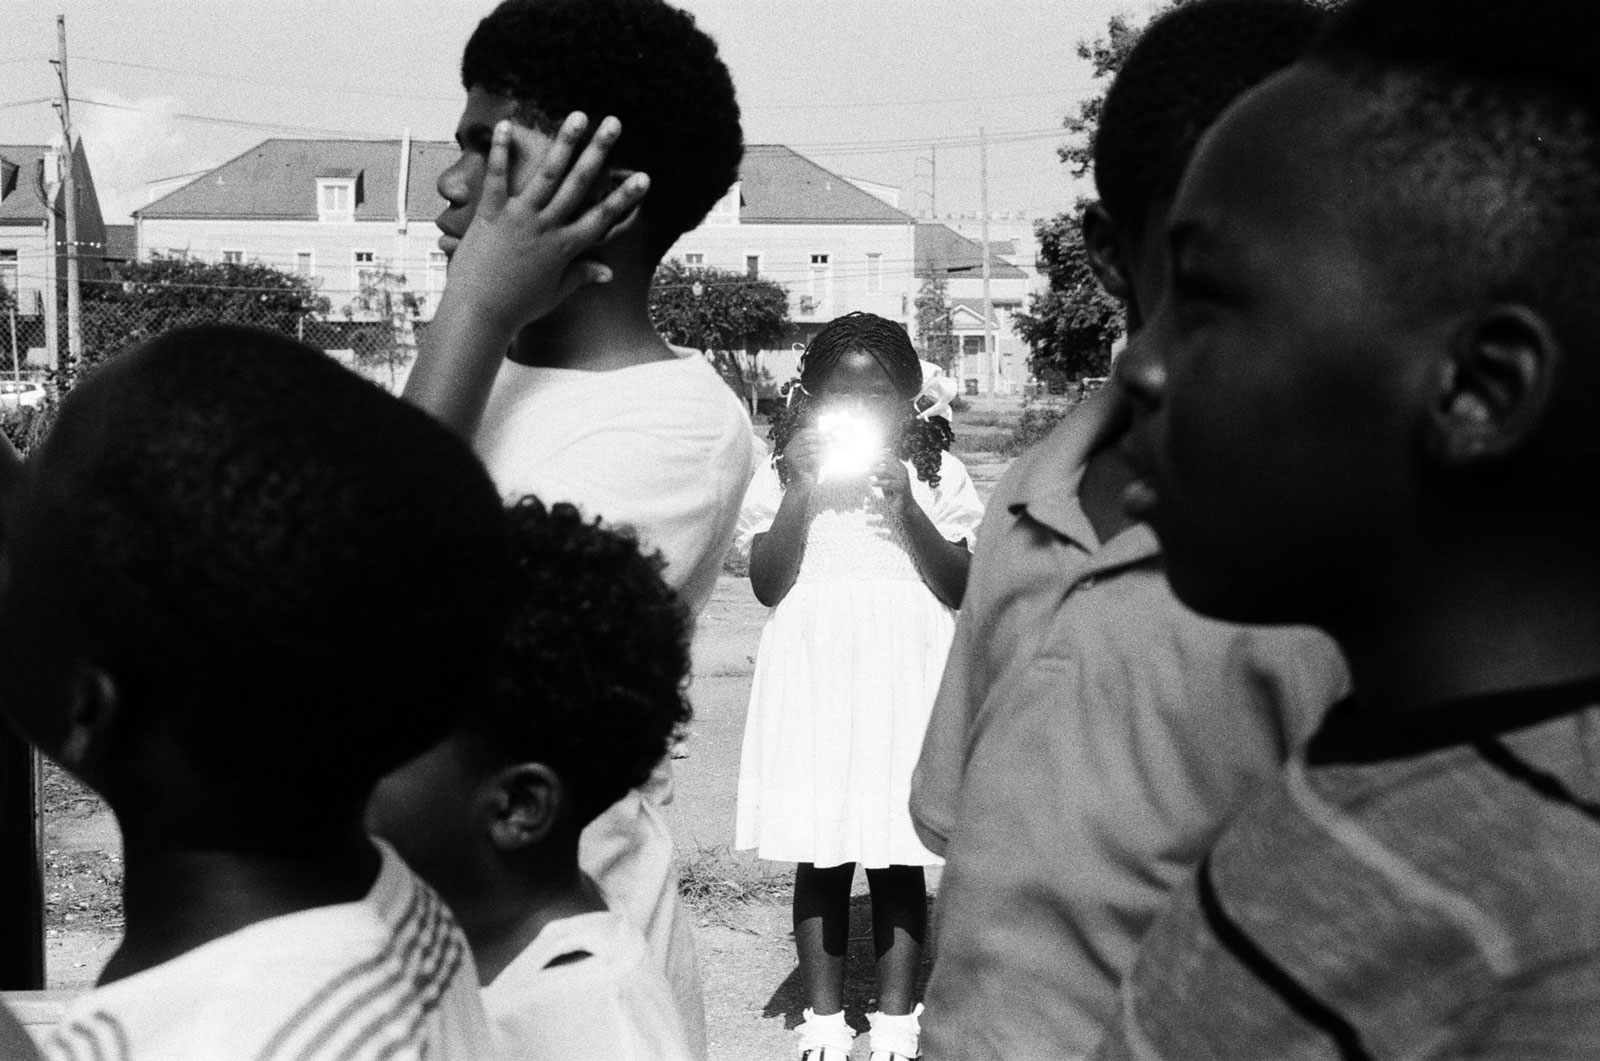 A black-and-white image of a young Black girl in a white dress